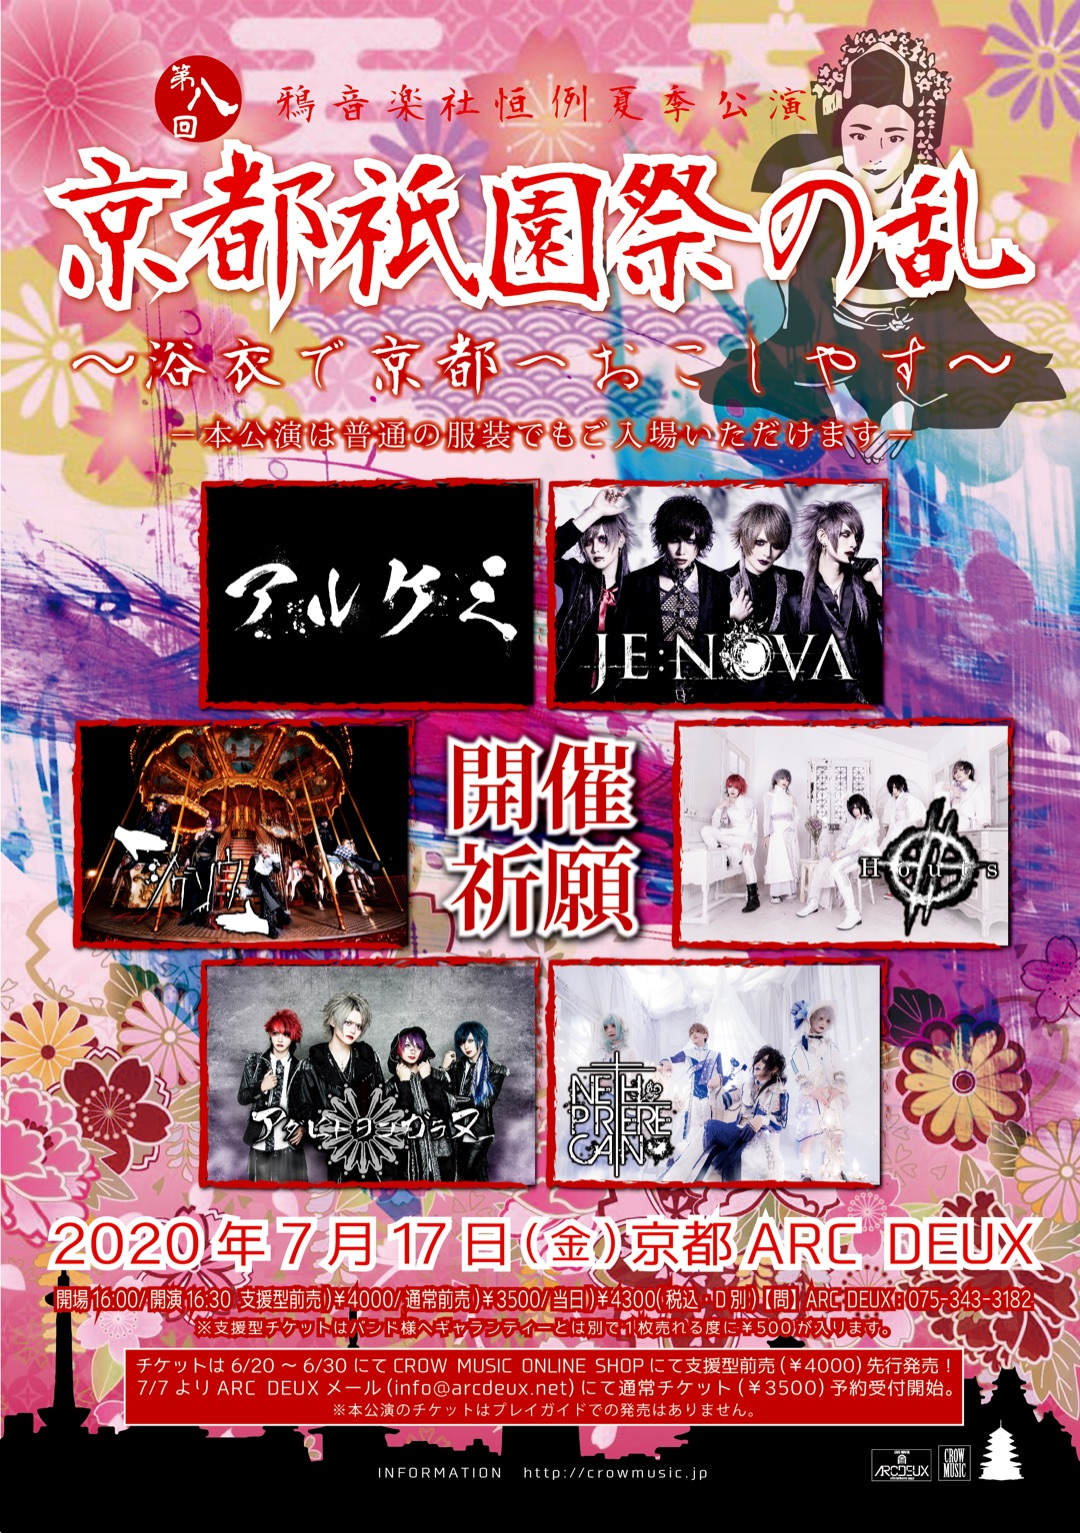 Houts 7月17日イベント出演情報